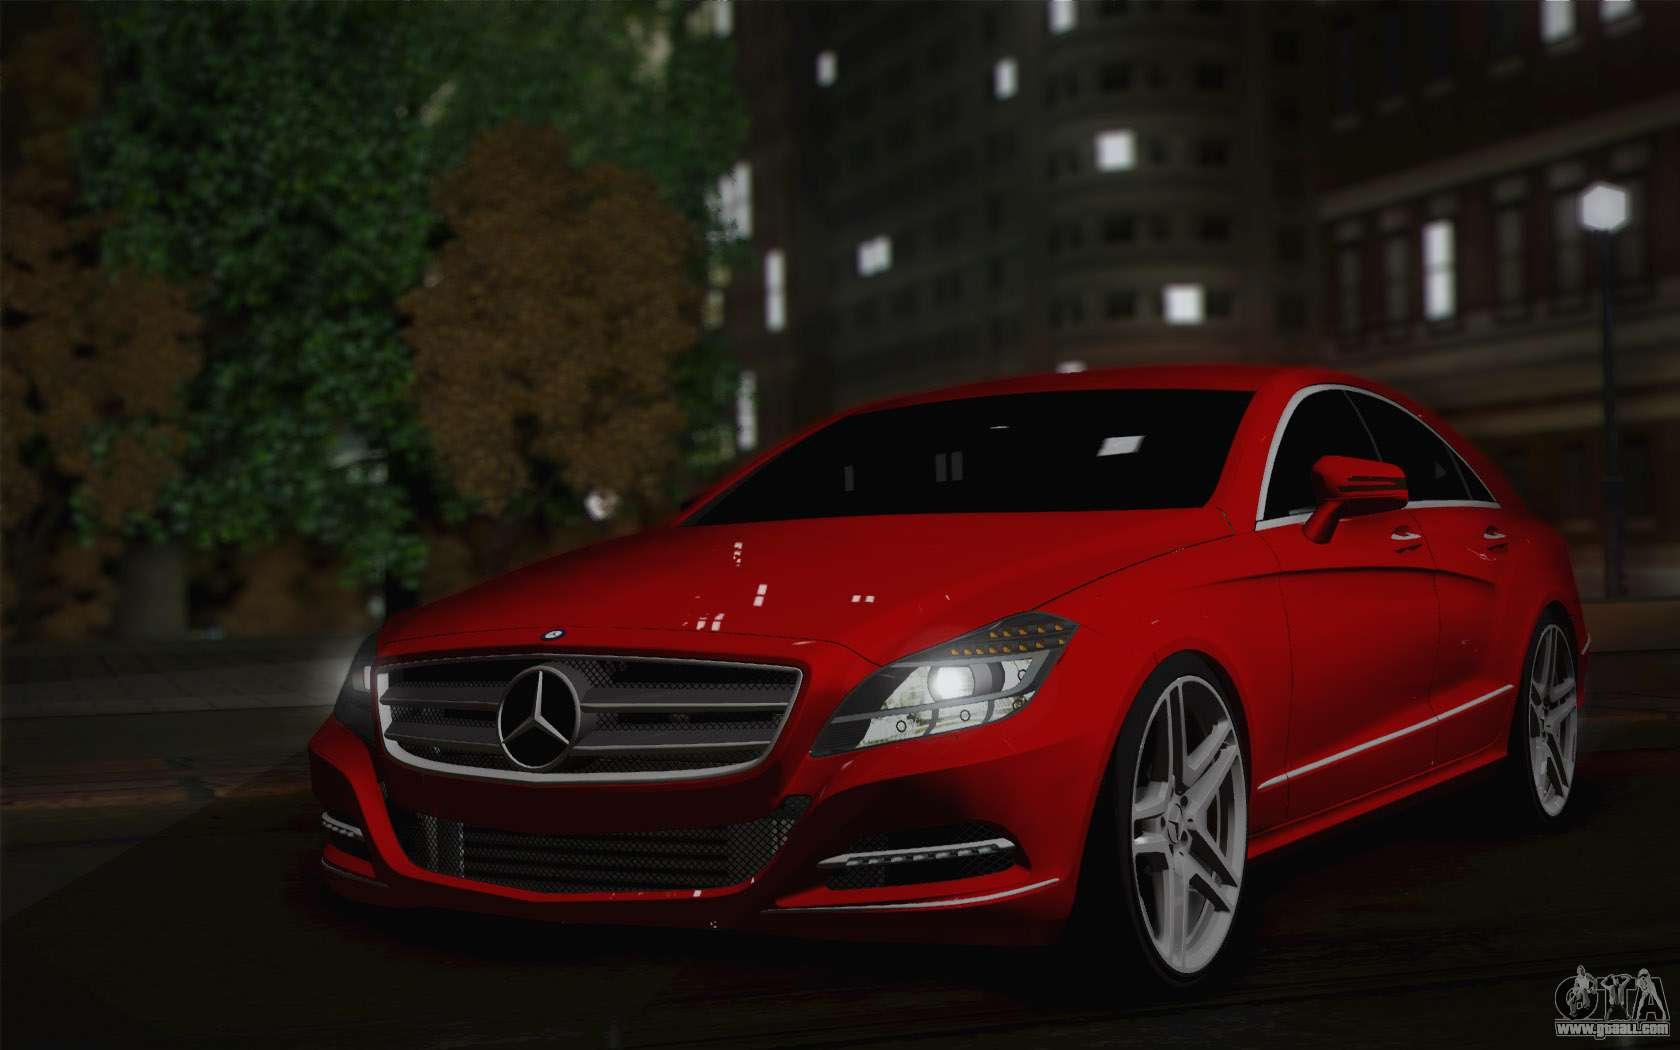 Mercedes benz cls 63 amg 2012 fixed for gta san andreas for Mercedes benz amg cls63